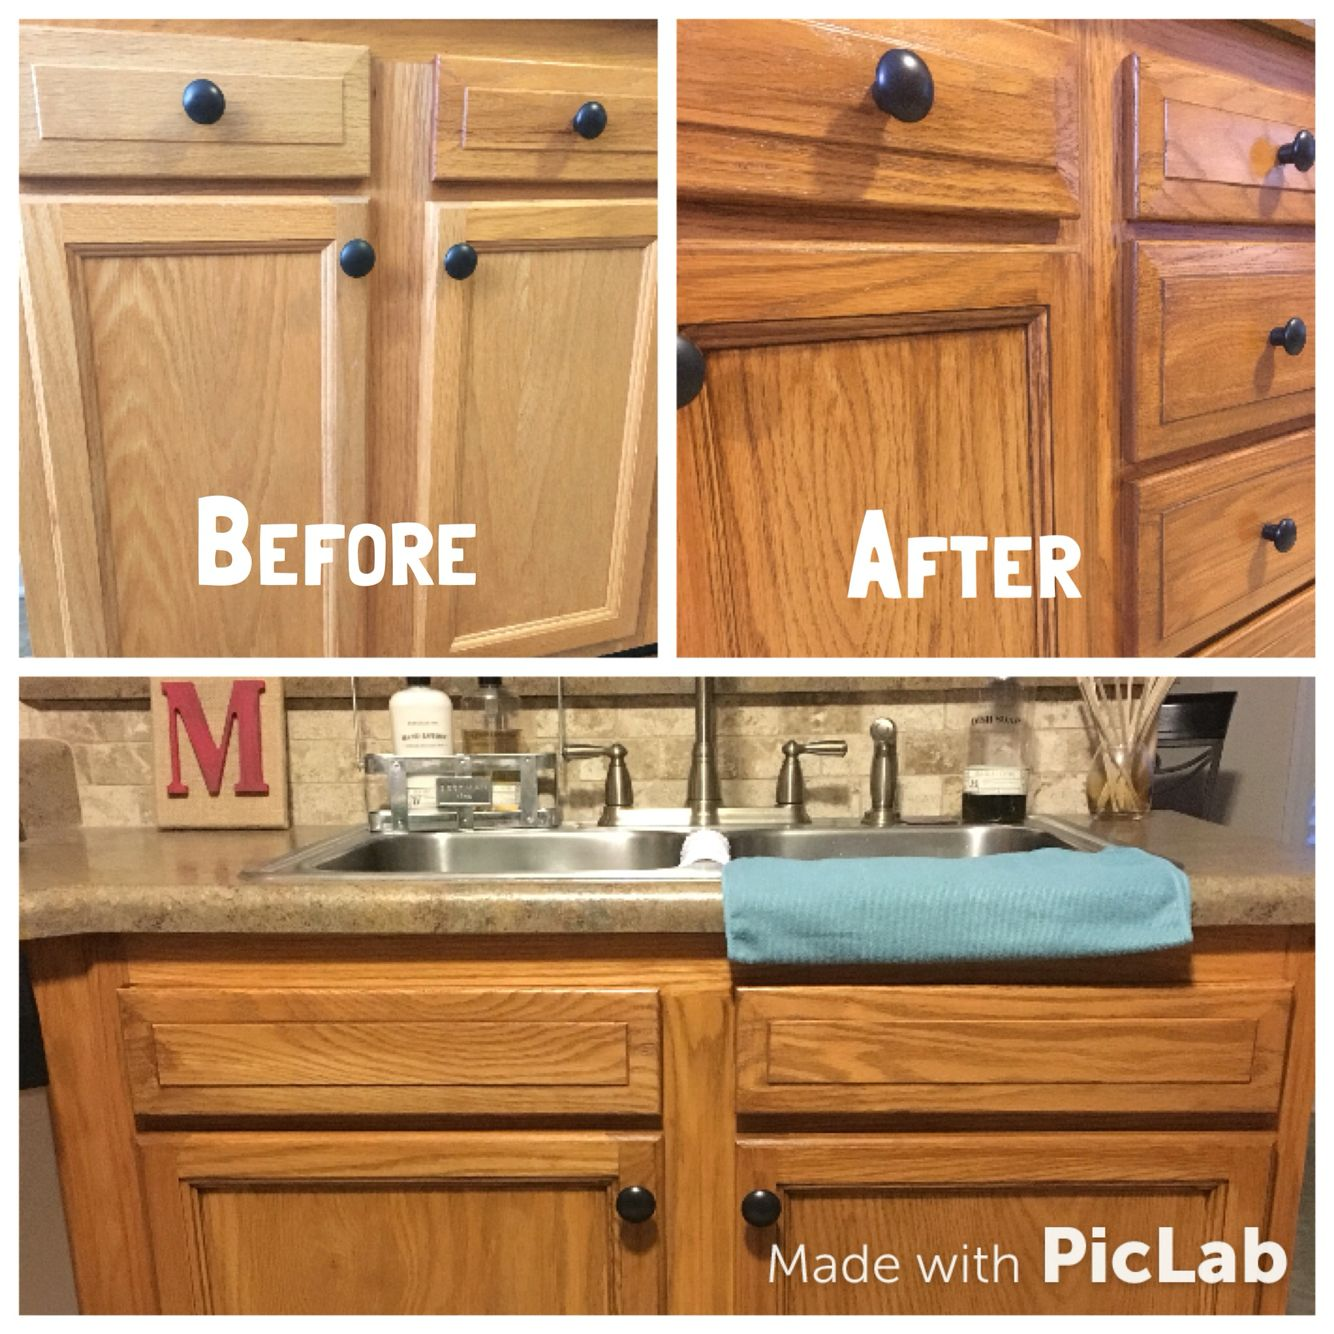 Honey Oak Cabinets Restained With Genera Finishes American Oak Gel Stain Cabinets Are Just A Shade O Oak Kitchen Remodel Kitchen Remodel Staining Oak Cabinets